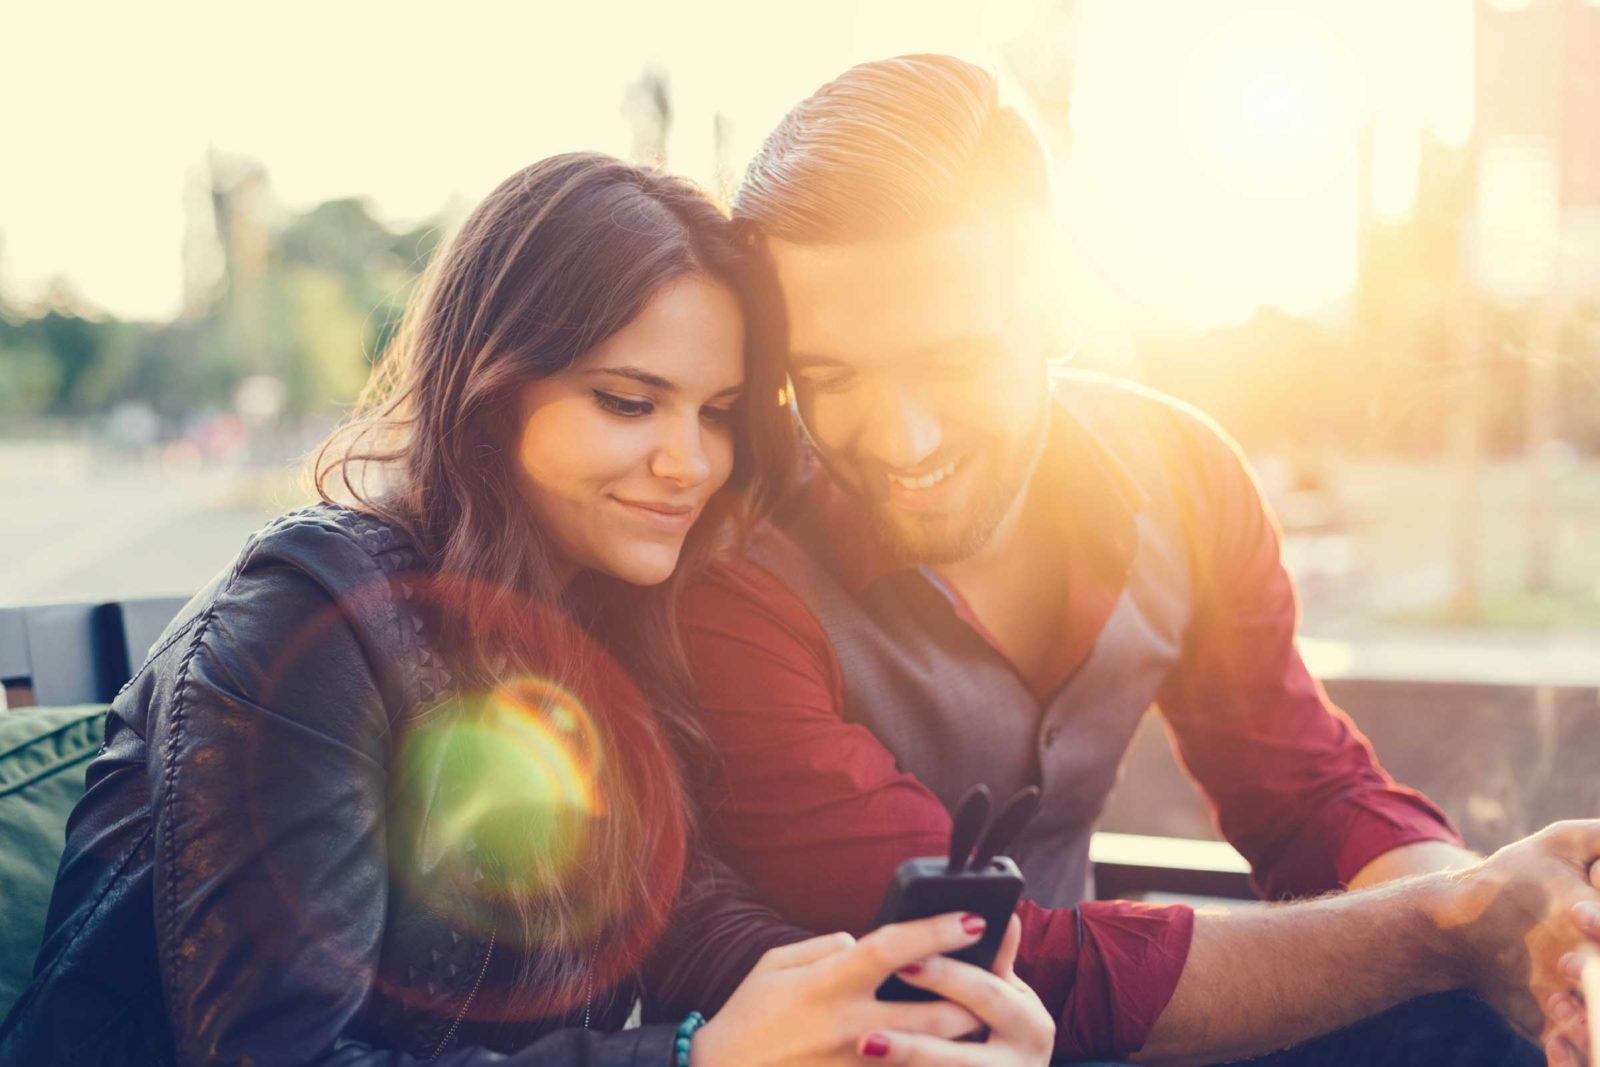 Text Messages For Him To Make Him Smile